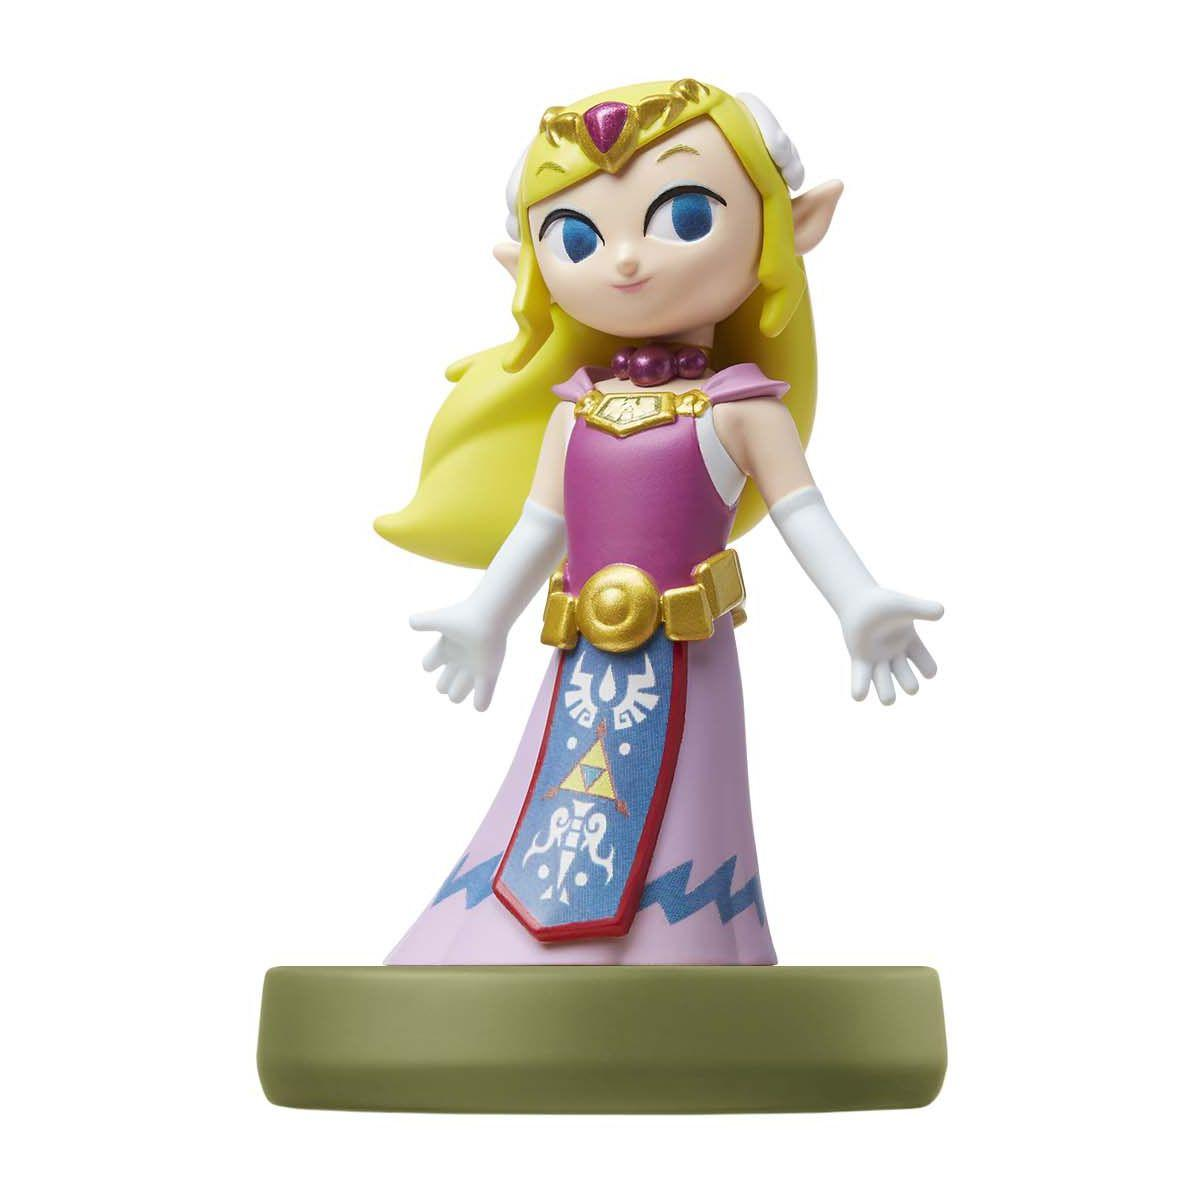 Figurine nintendo amiibo zelda the wind (photo)